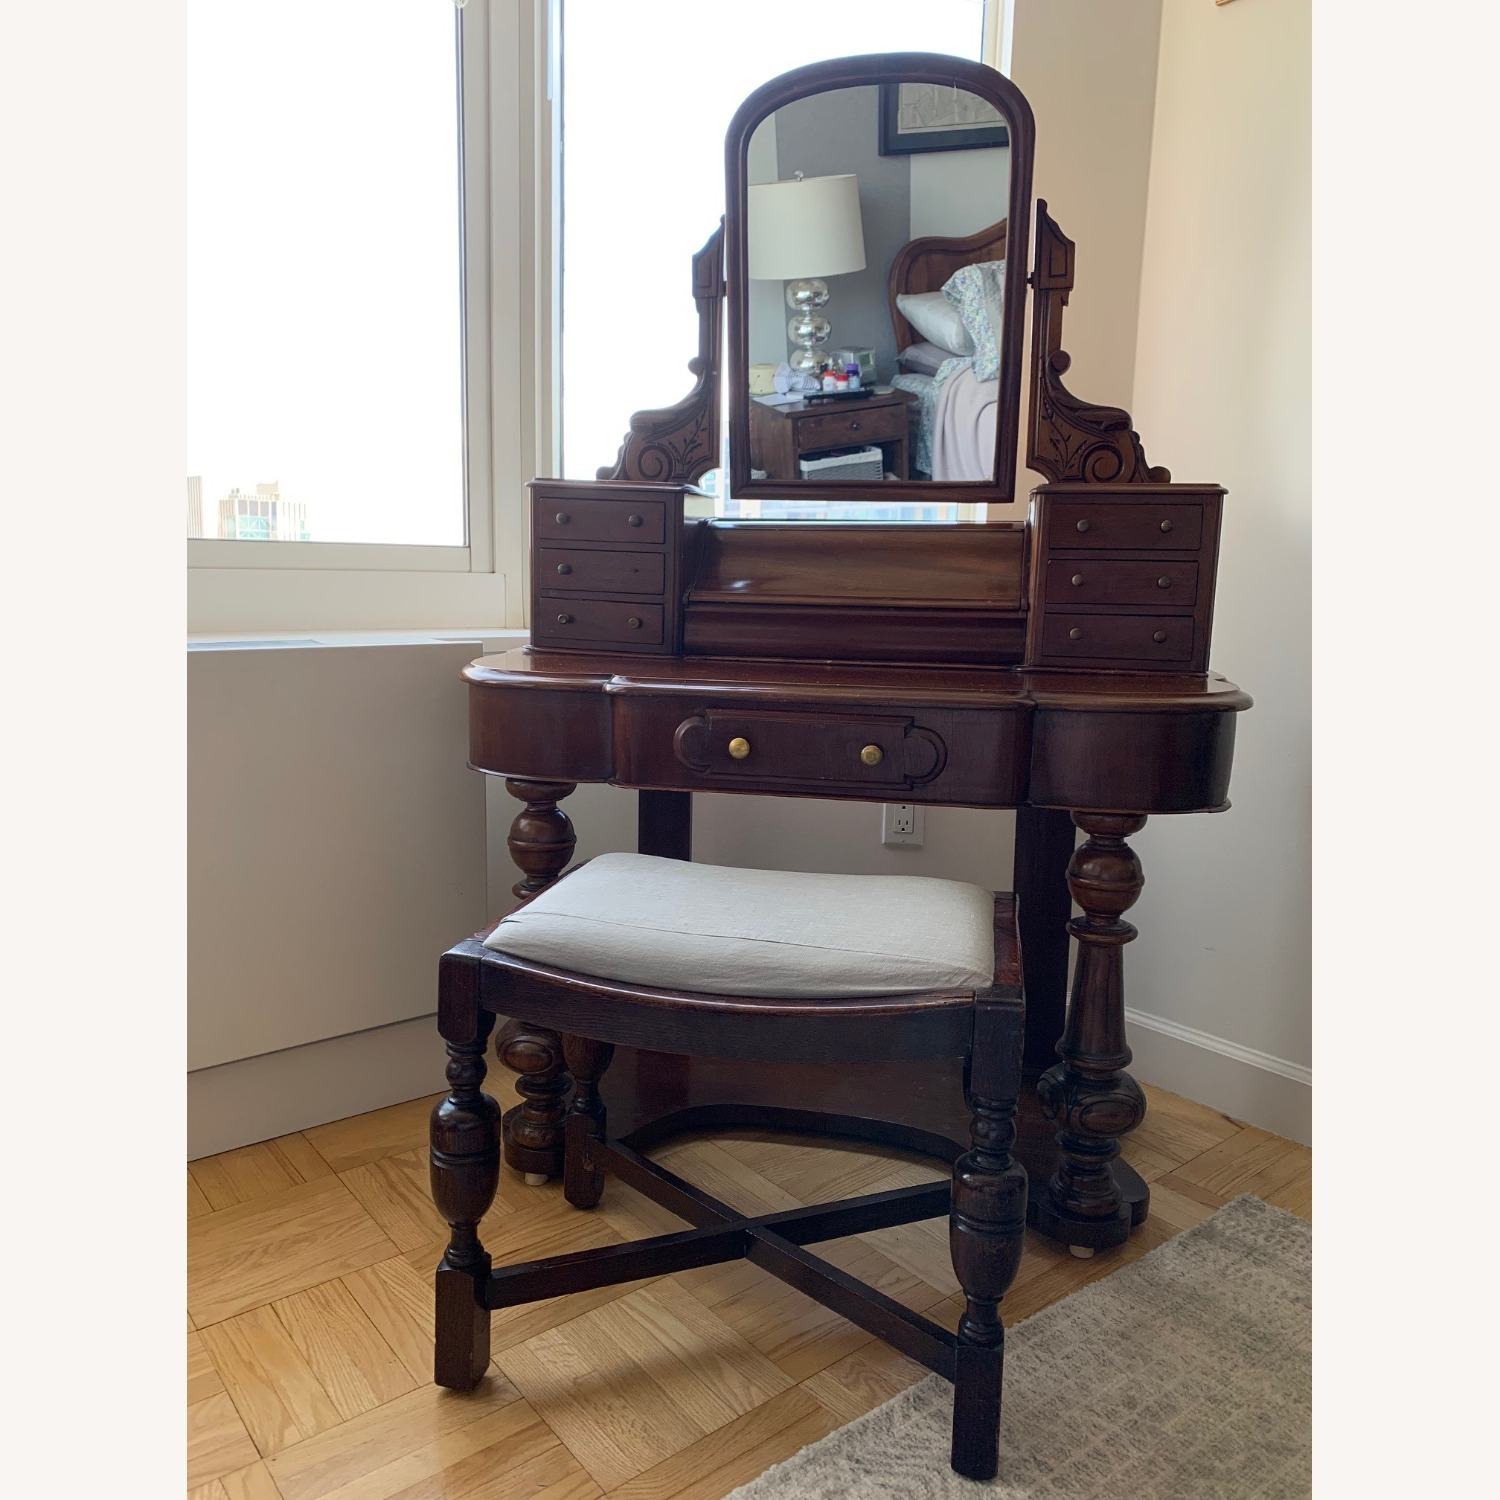 Victorian Antique Vanity Dressing Table and Stool - image-2